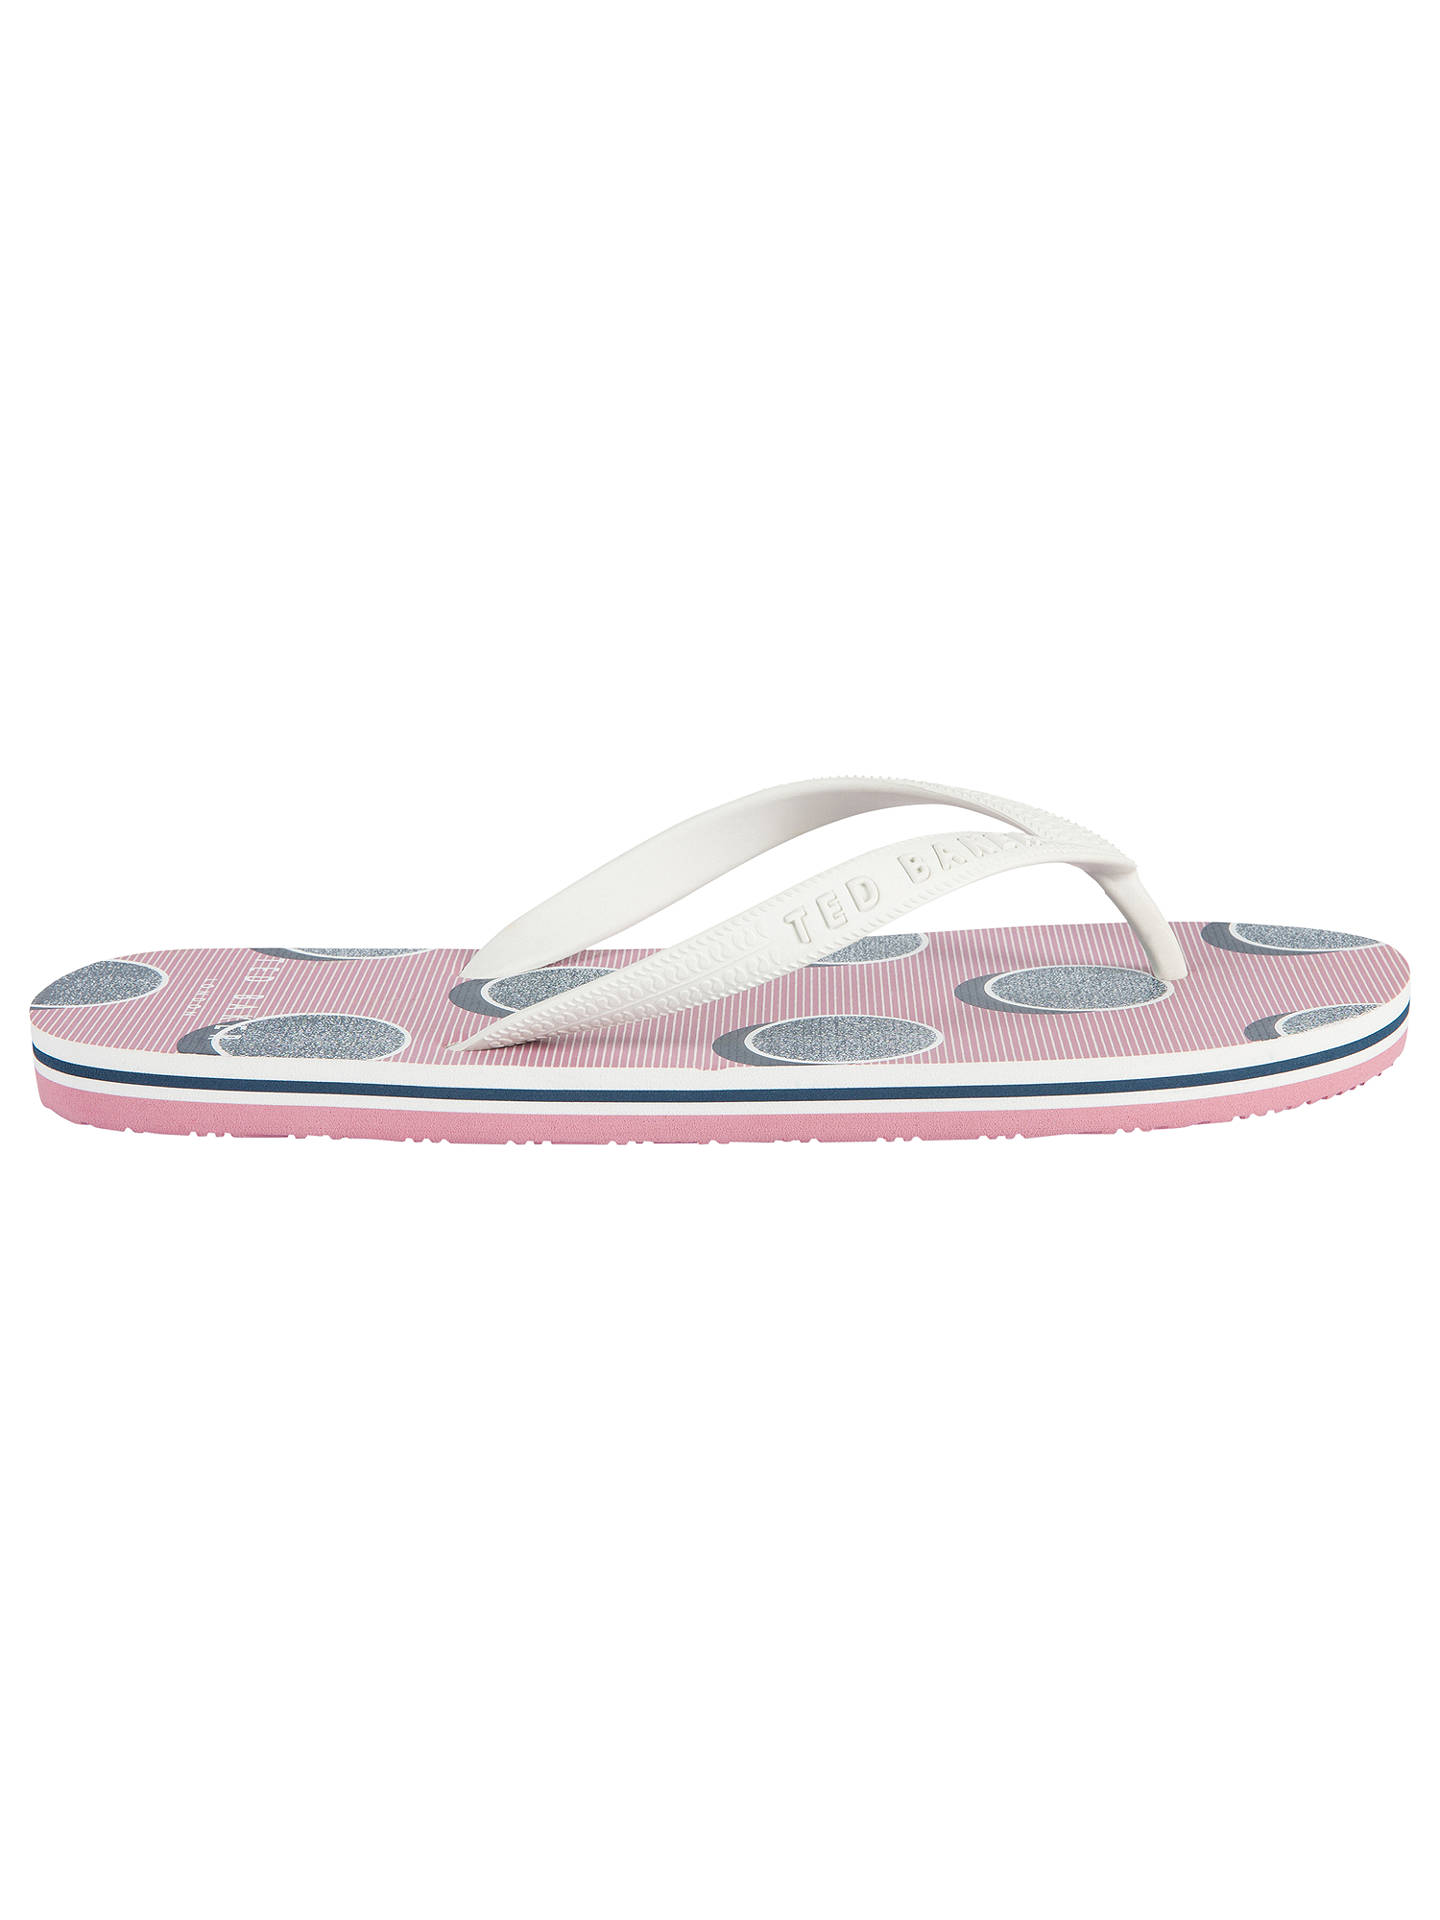 770598ce2 Buy Ted Baker Flyxx Toe Post Sandals